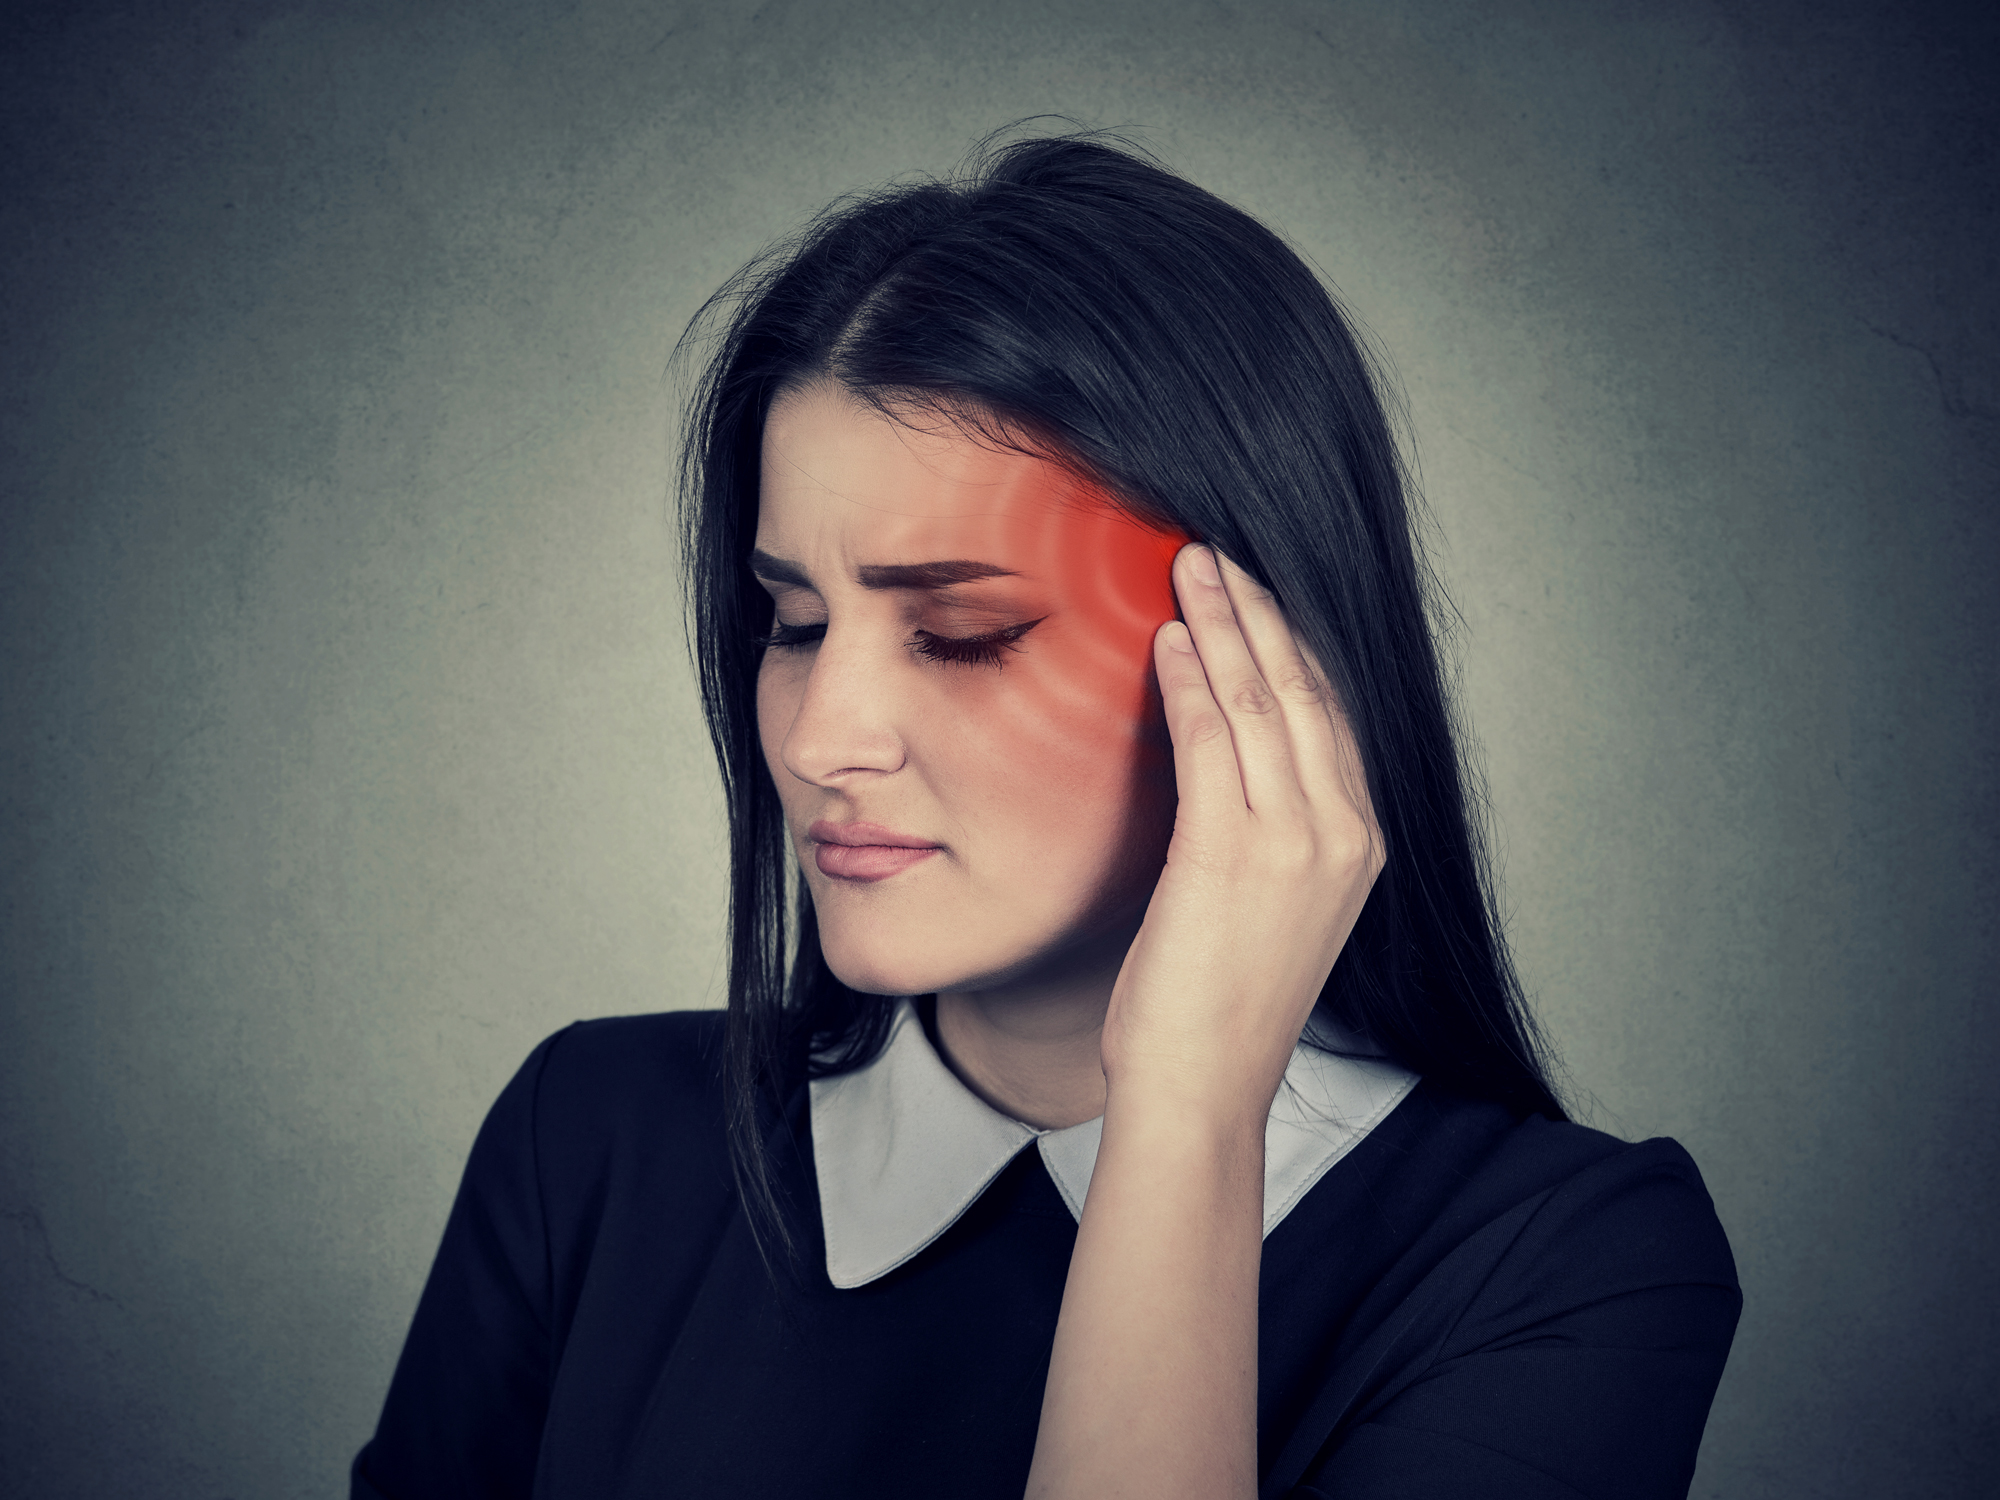 Trigeminal neuralgia: A painful bully that can wreak havoc on your life